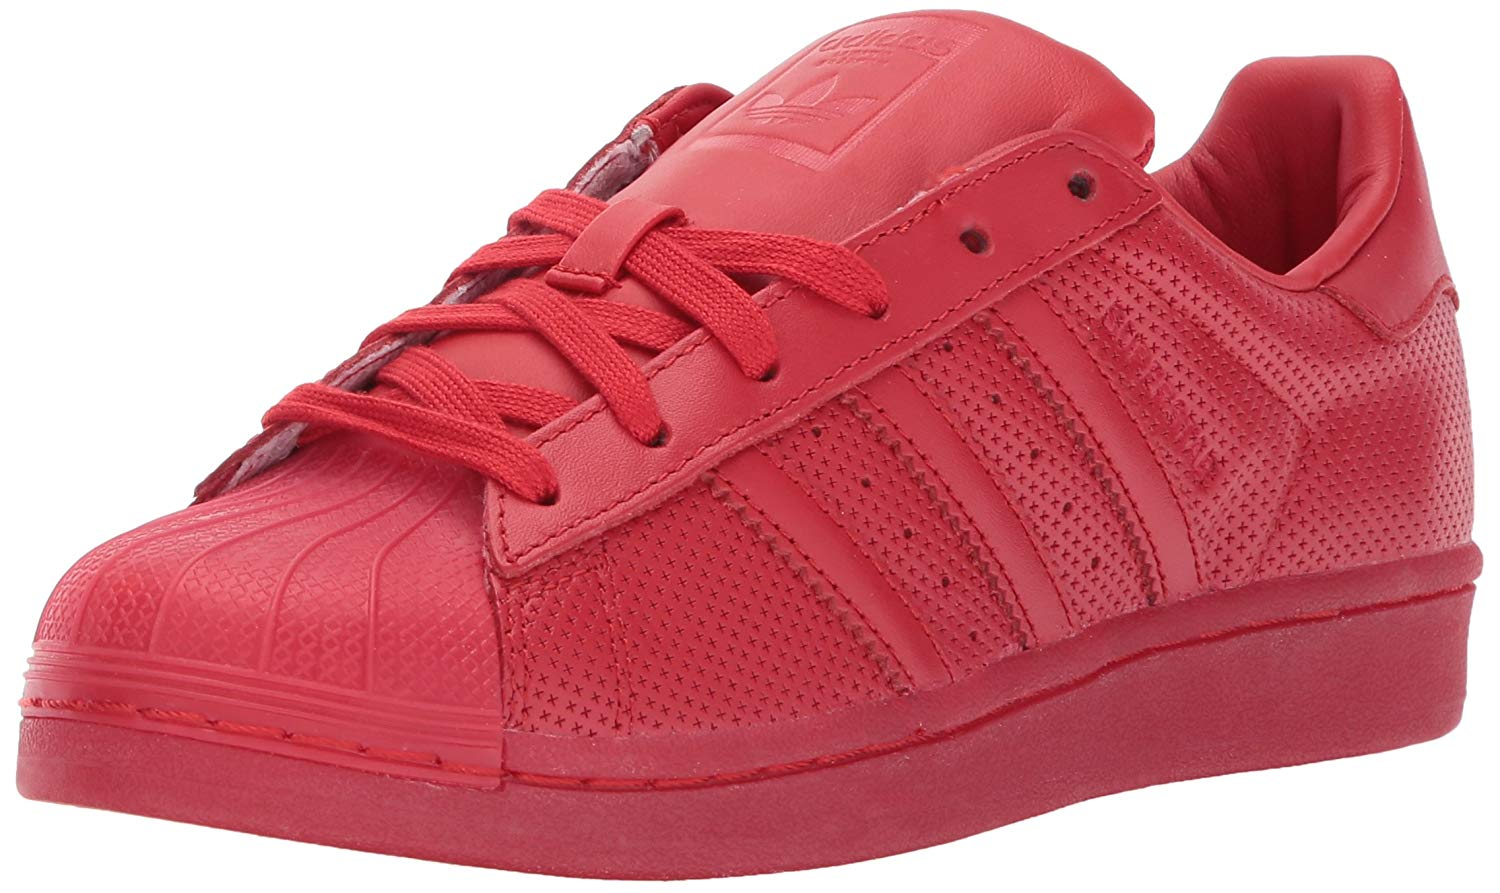 Cheap Deals On Shoes Adidas Superstar ShoesFind m8vwn0NO